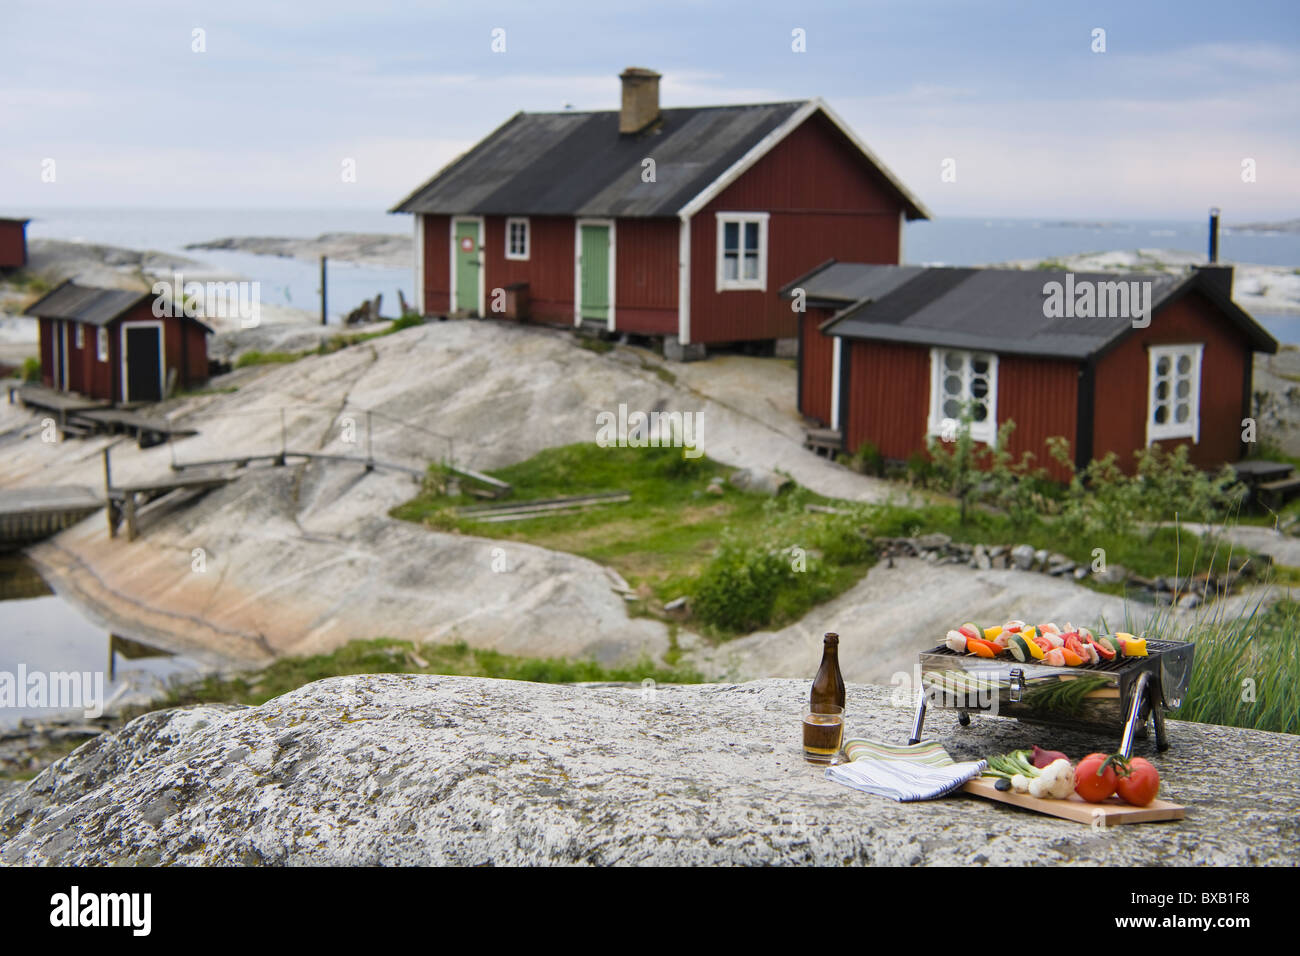 Barbecue grill with vegetables on rock with houses in background - Stock Image